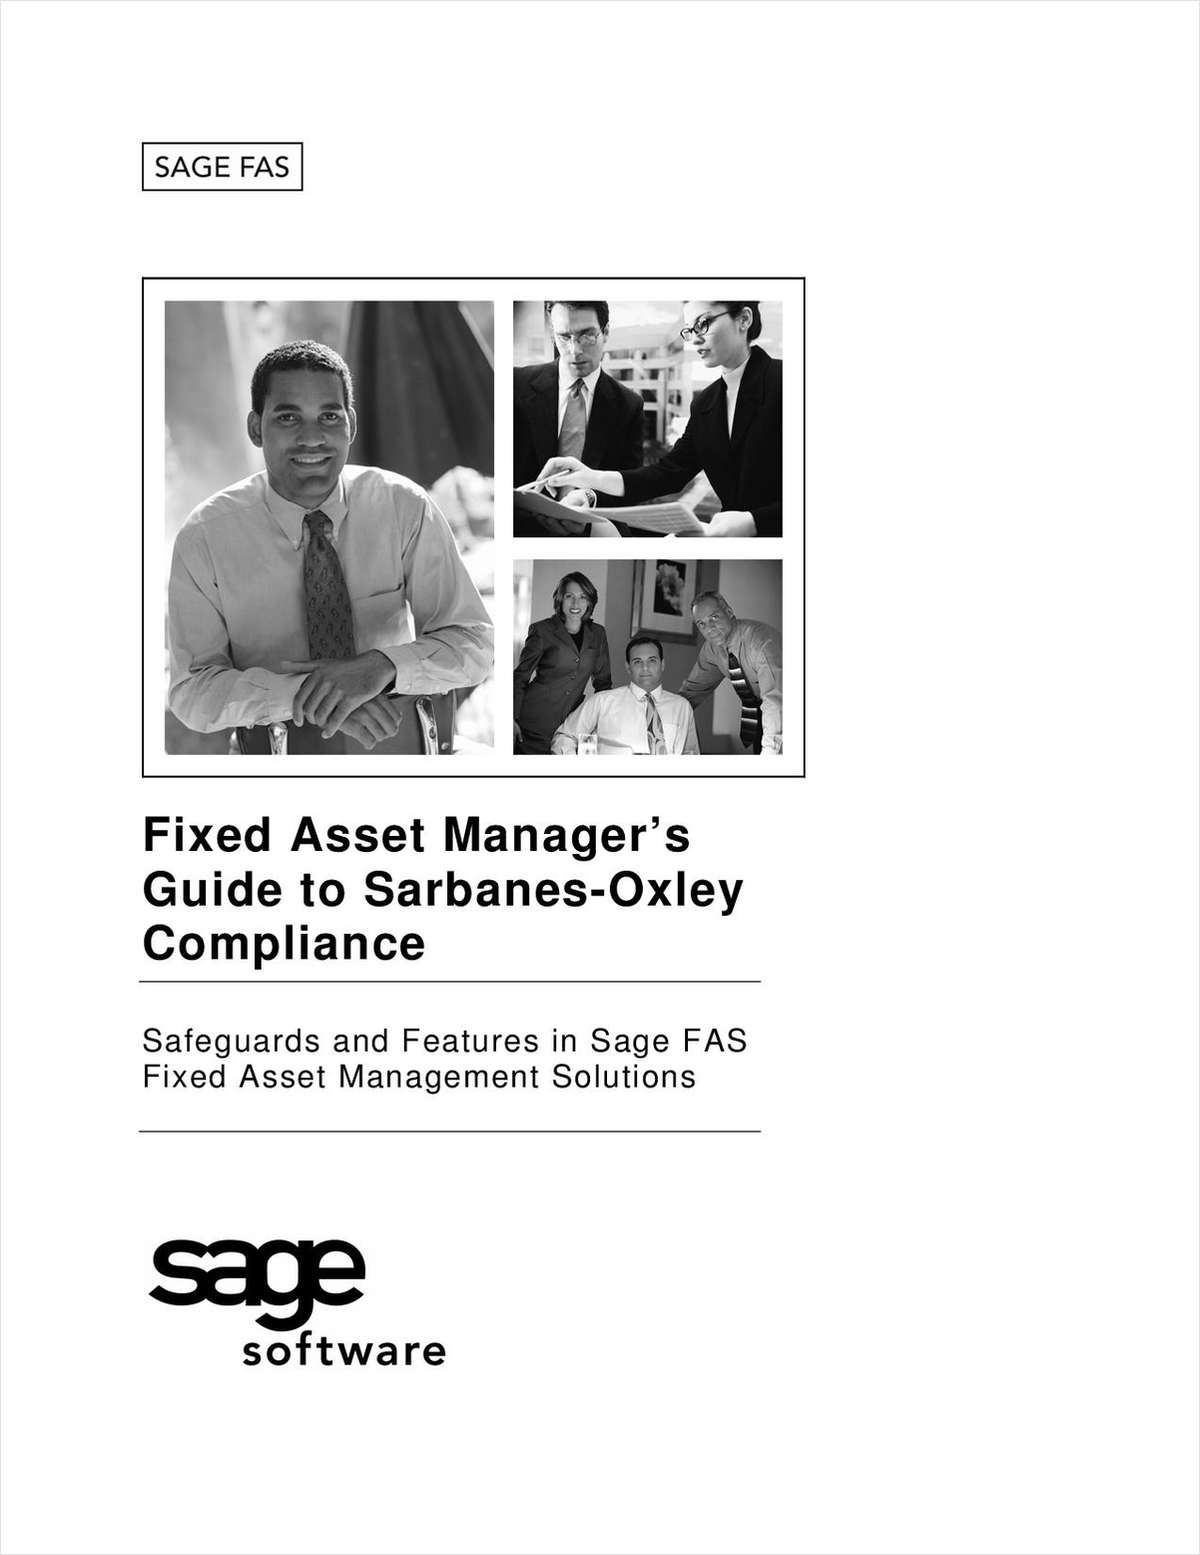 Fixed Asset Manager's Guide to Sarbanes-Oxley: Compliance Safeguards and Features in Sage FAS Fixed Asset Management Solutions